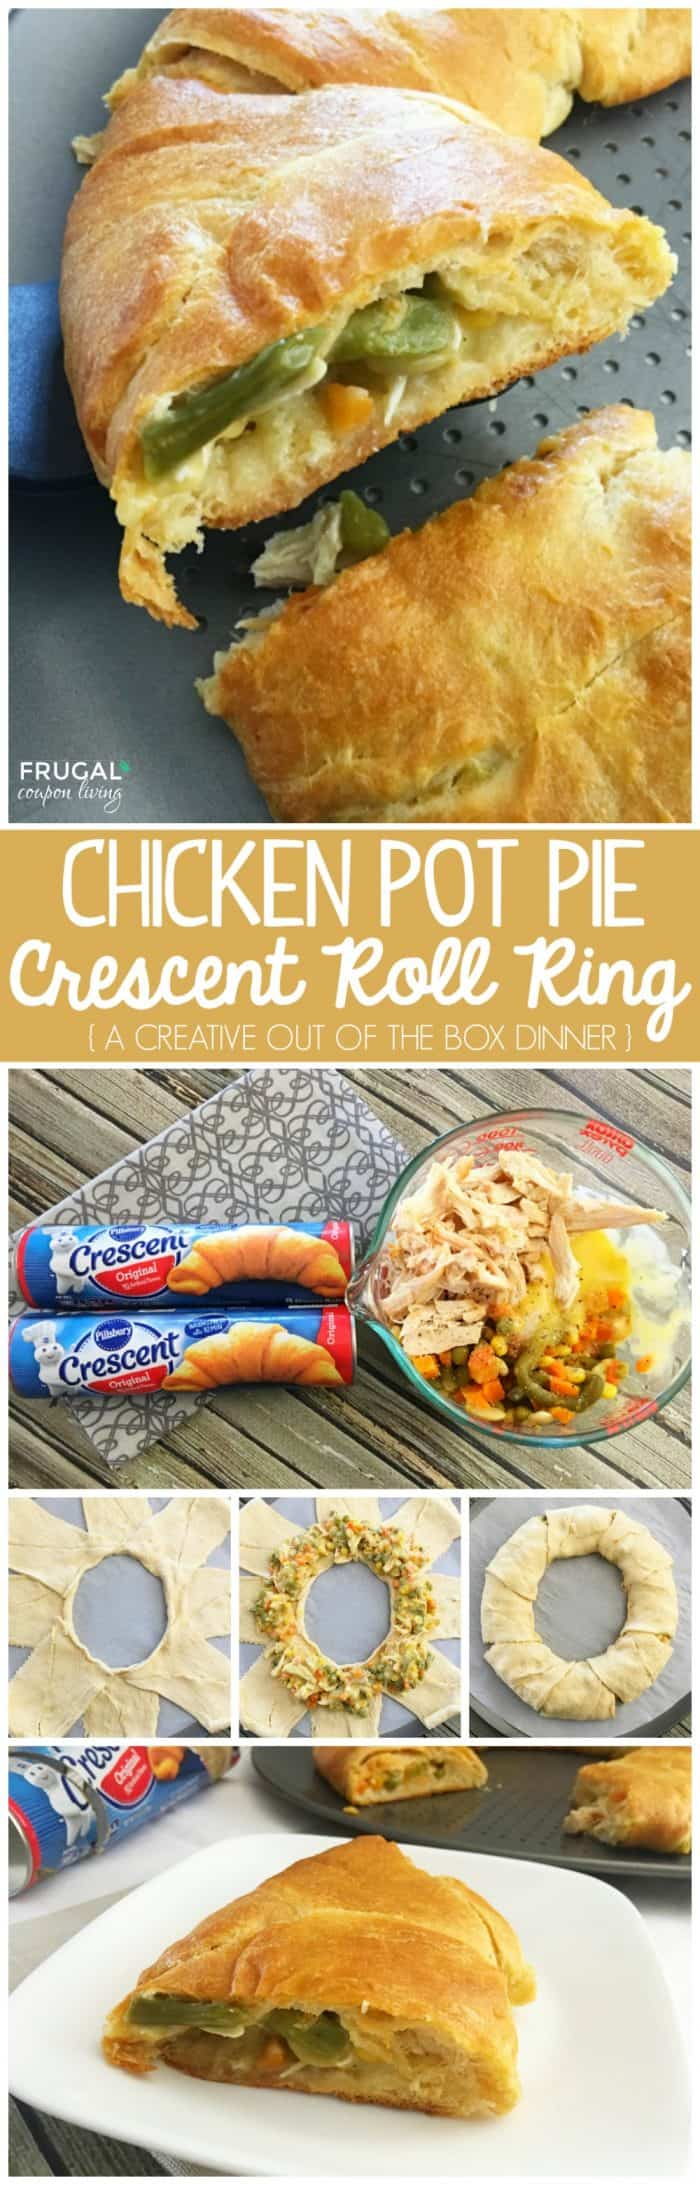 Pillsbury Chicken Pot Pie Crescent Roll Ring